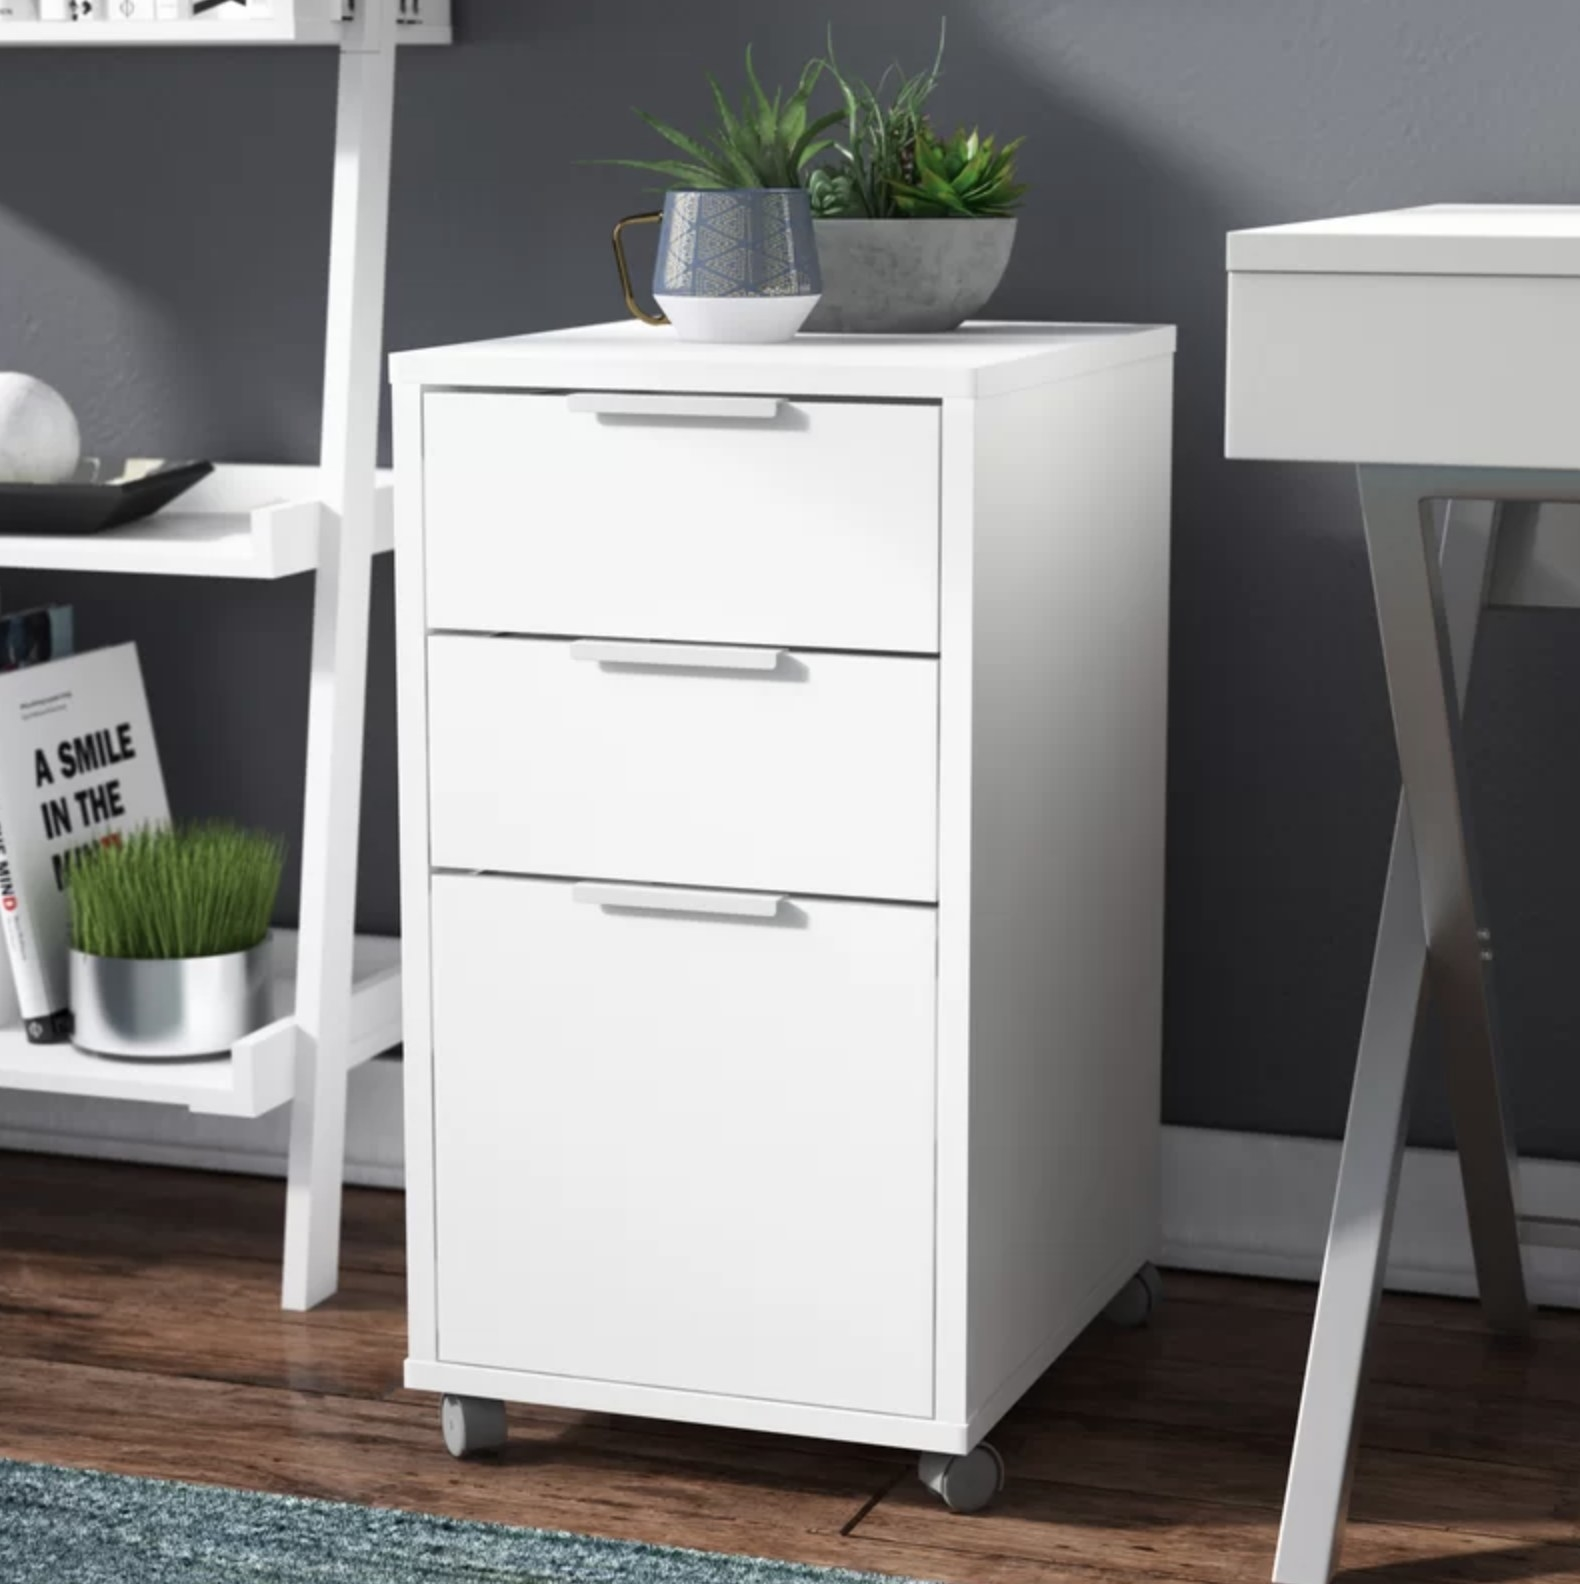 The white filing cabinet with three drawers